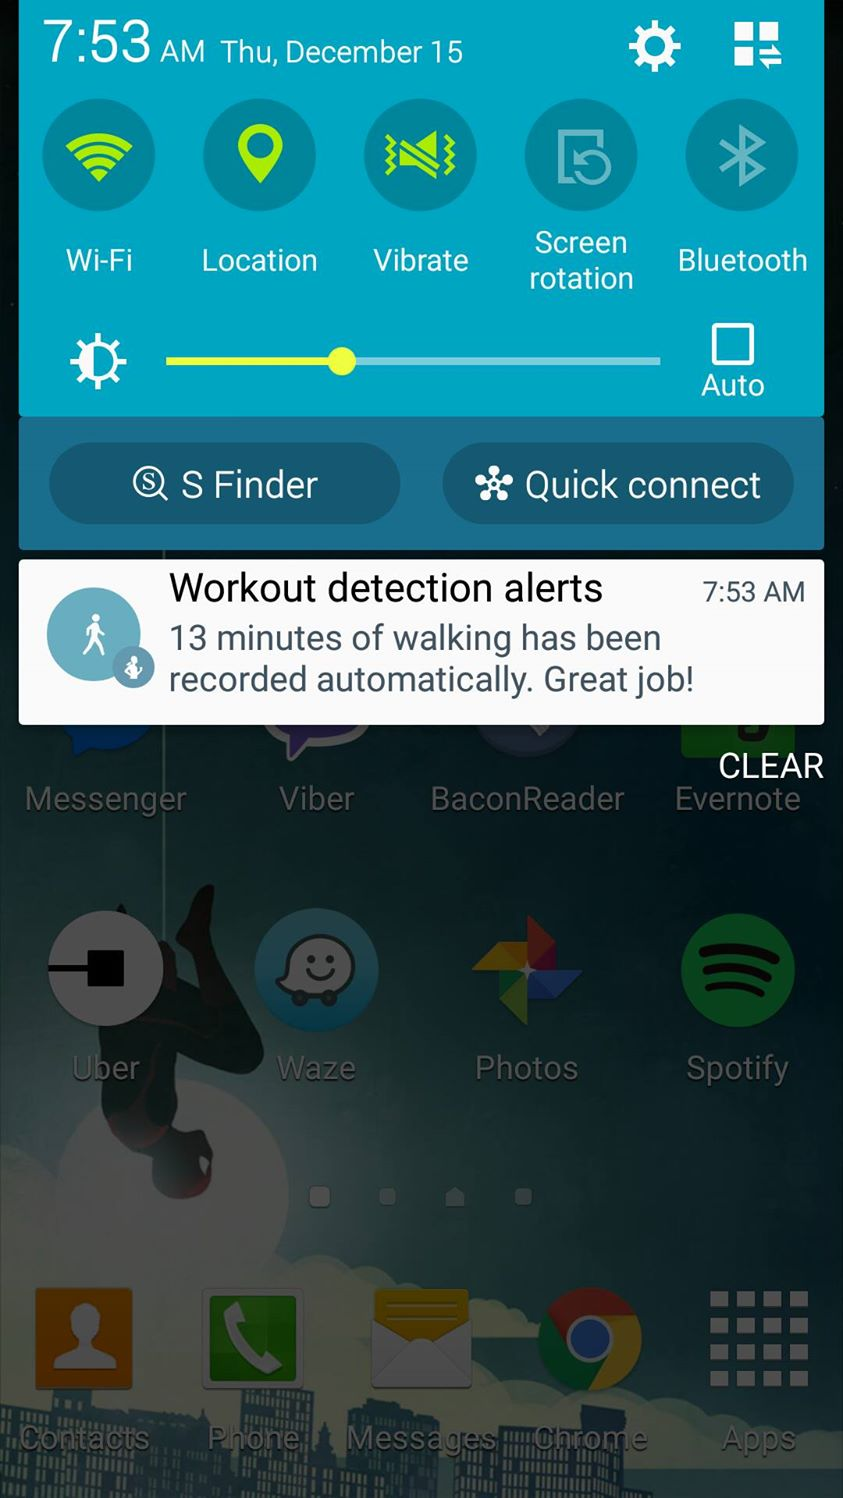 I always get annoyed at the poor subject verb agreement of this notif